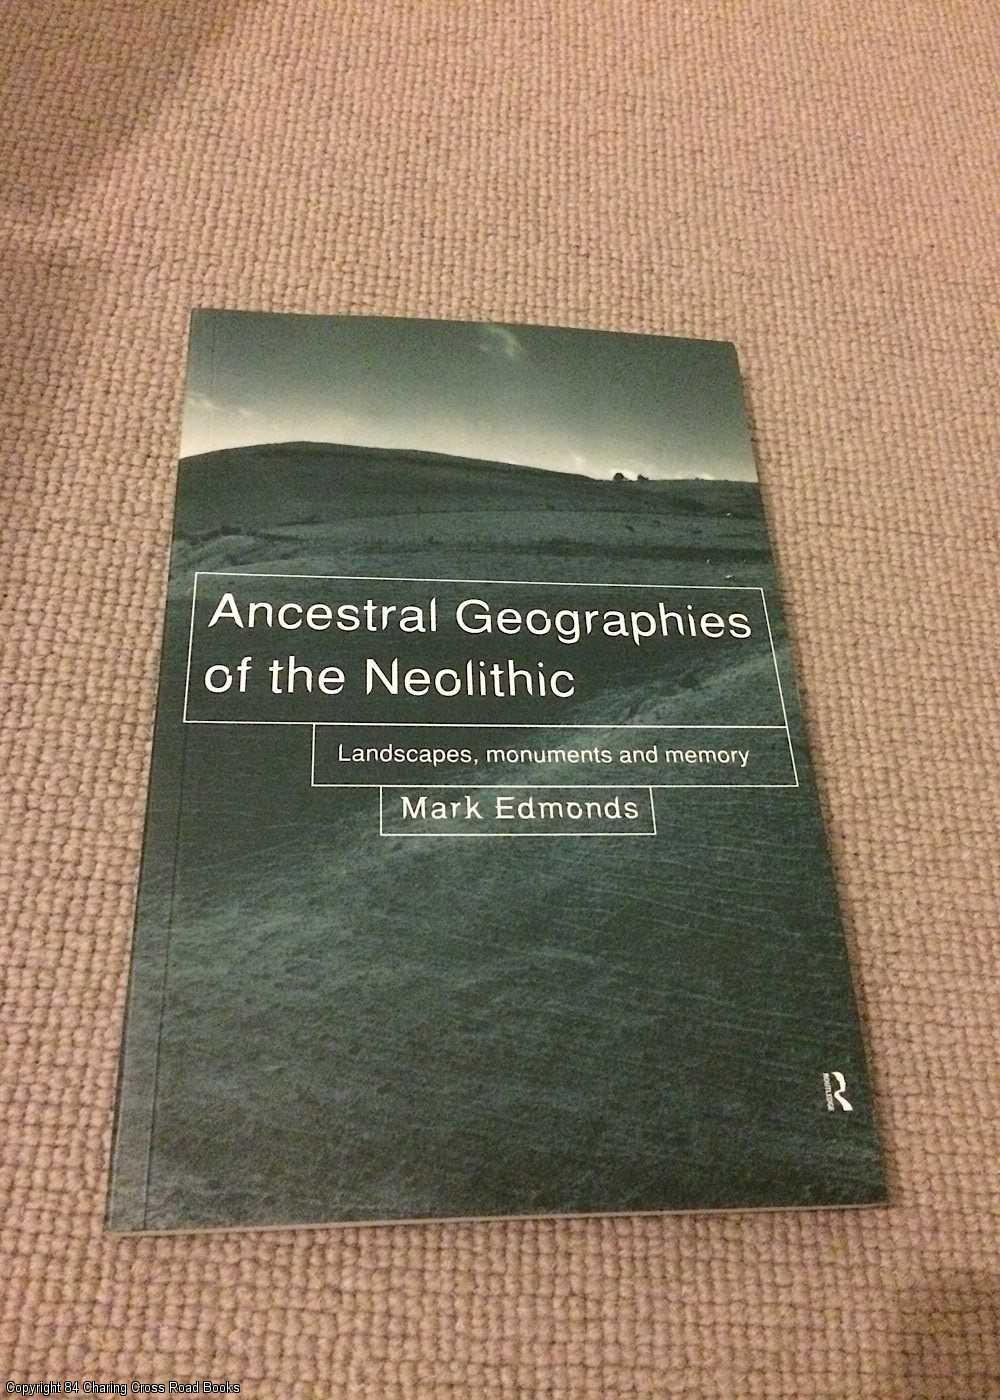 EDMONDS, MARK - Ancestral Geographies of the Neolithic: Landscapes, Monuments and Memory